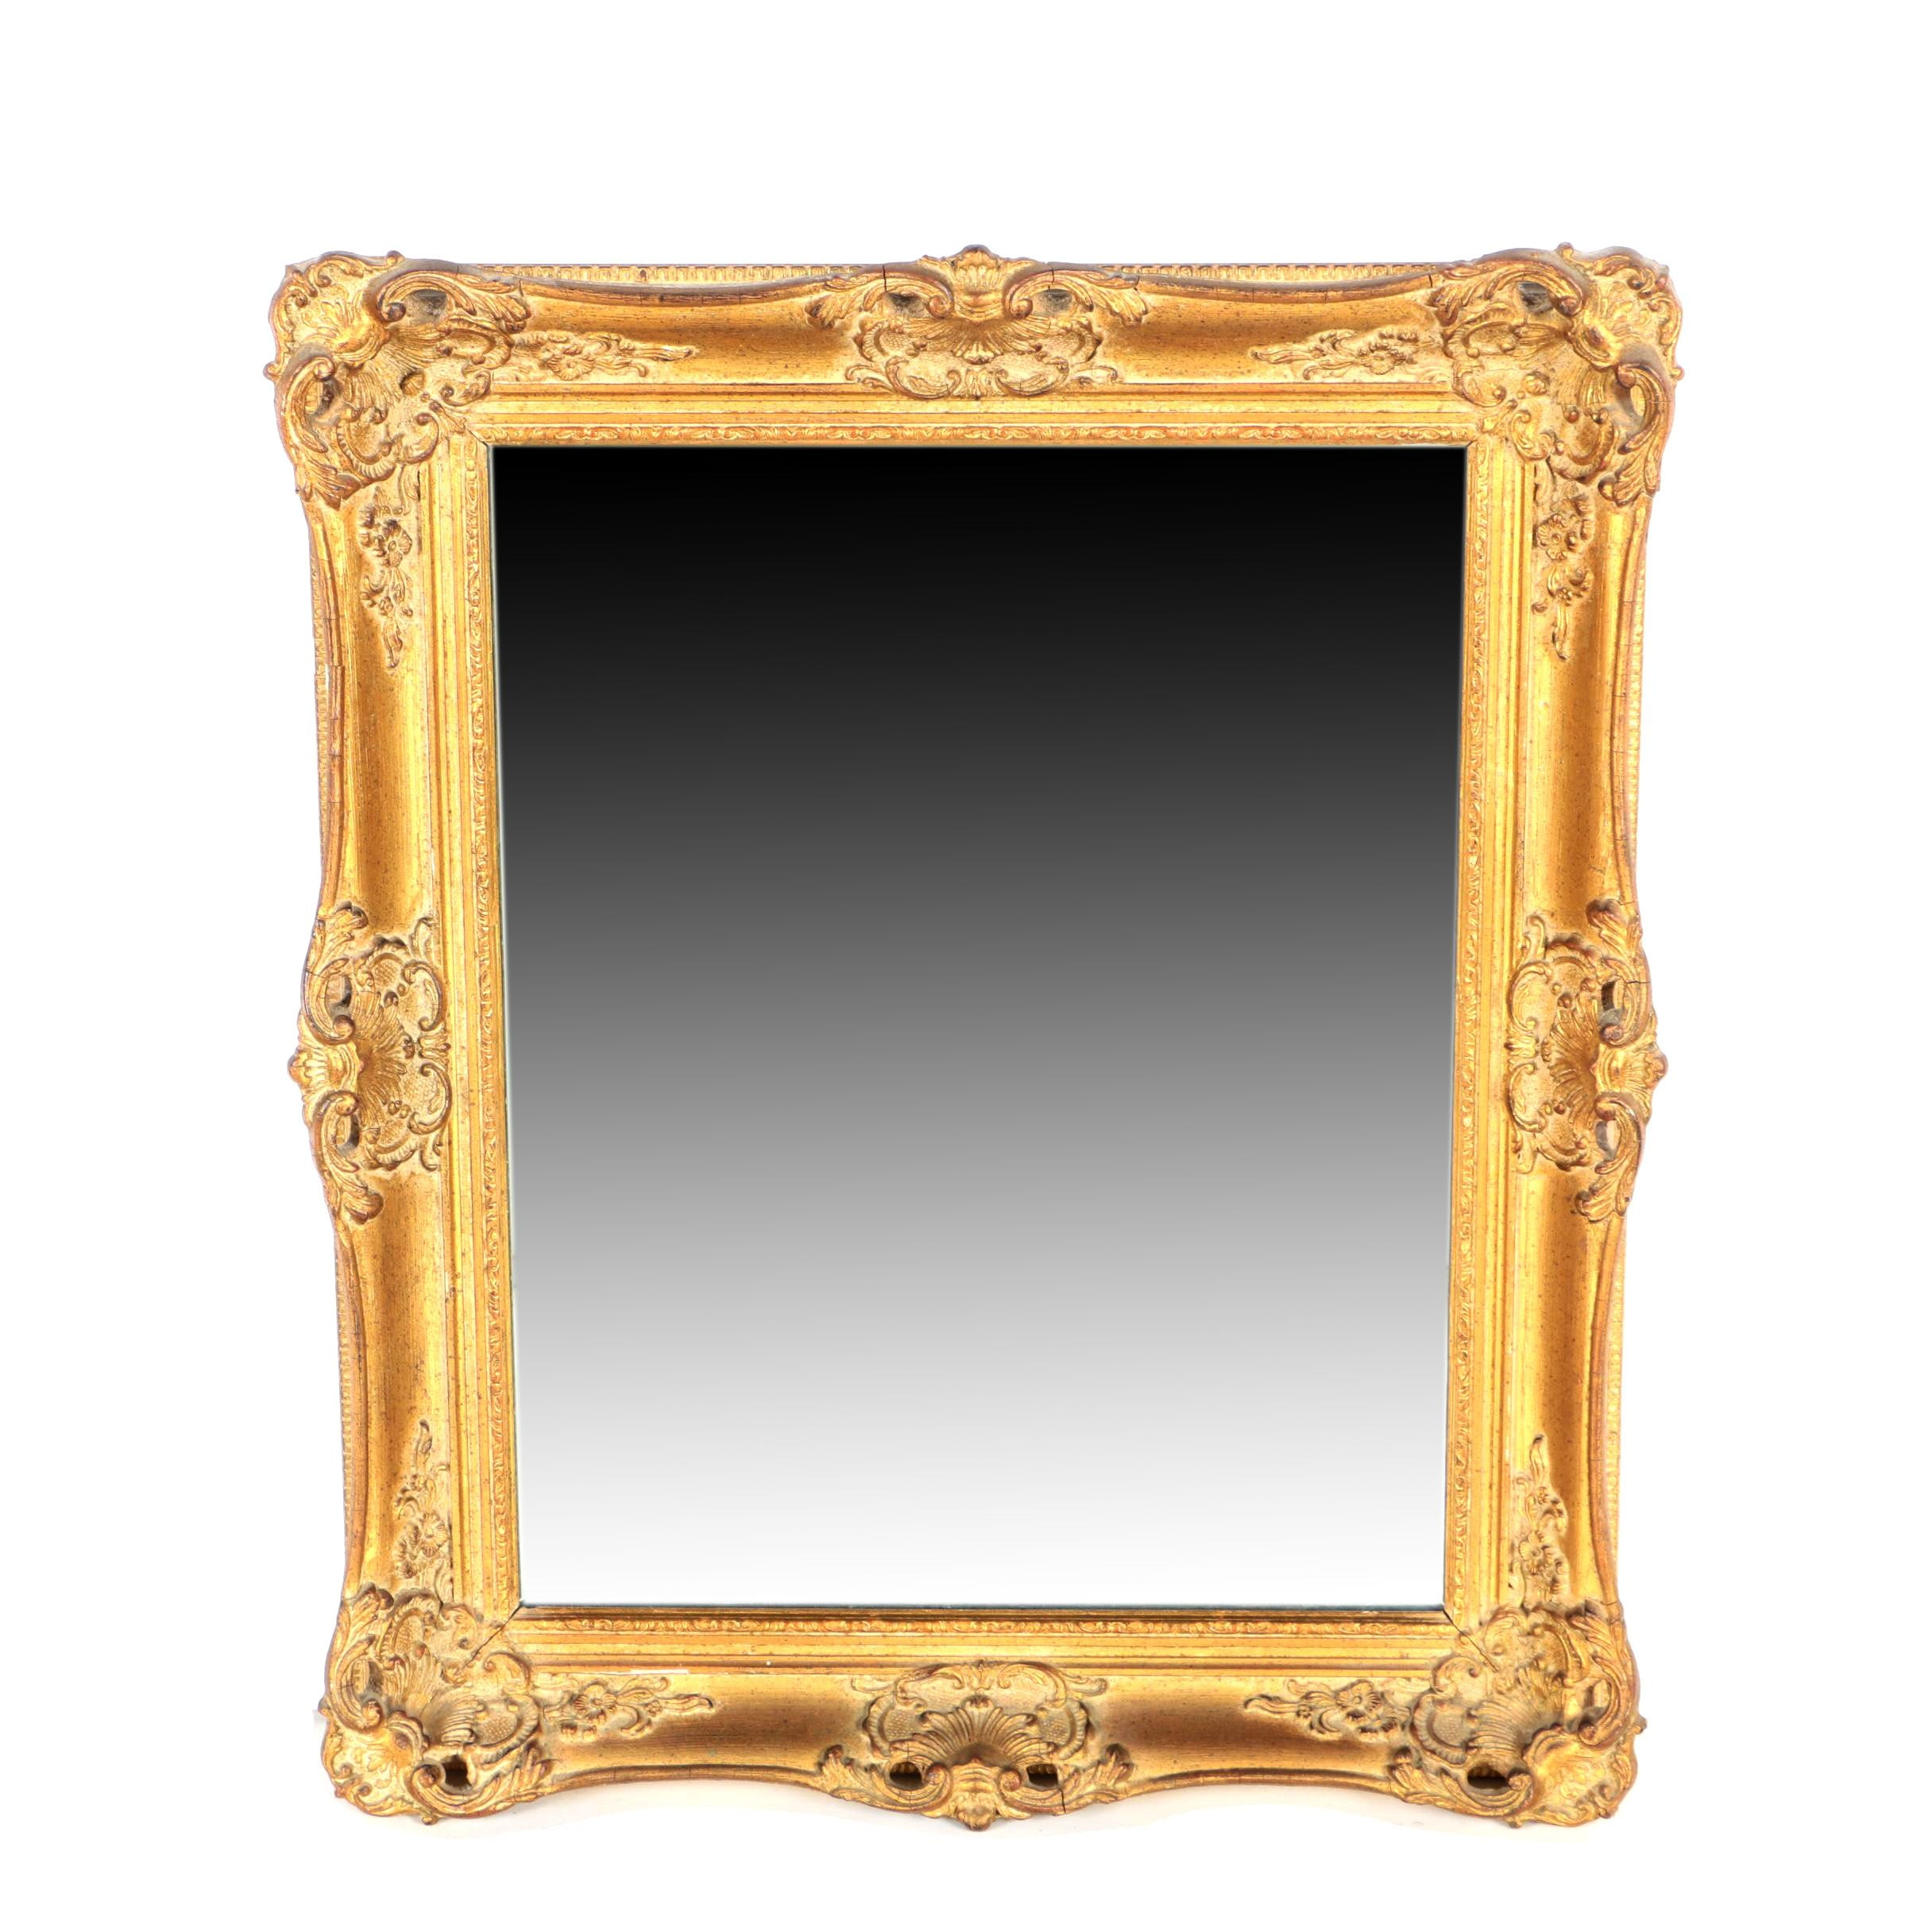 Gold Painted Baroque Style Wood Framed Wall Mirror